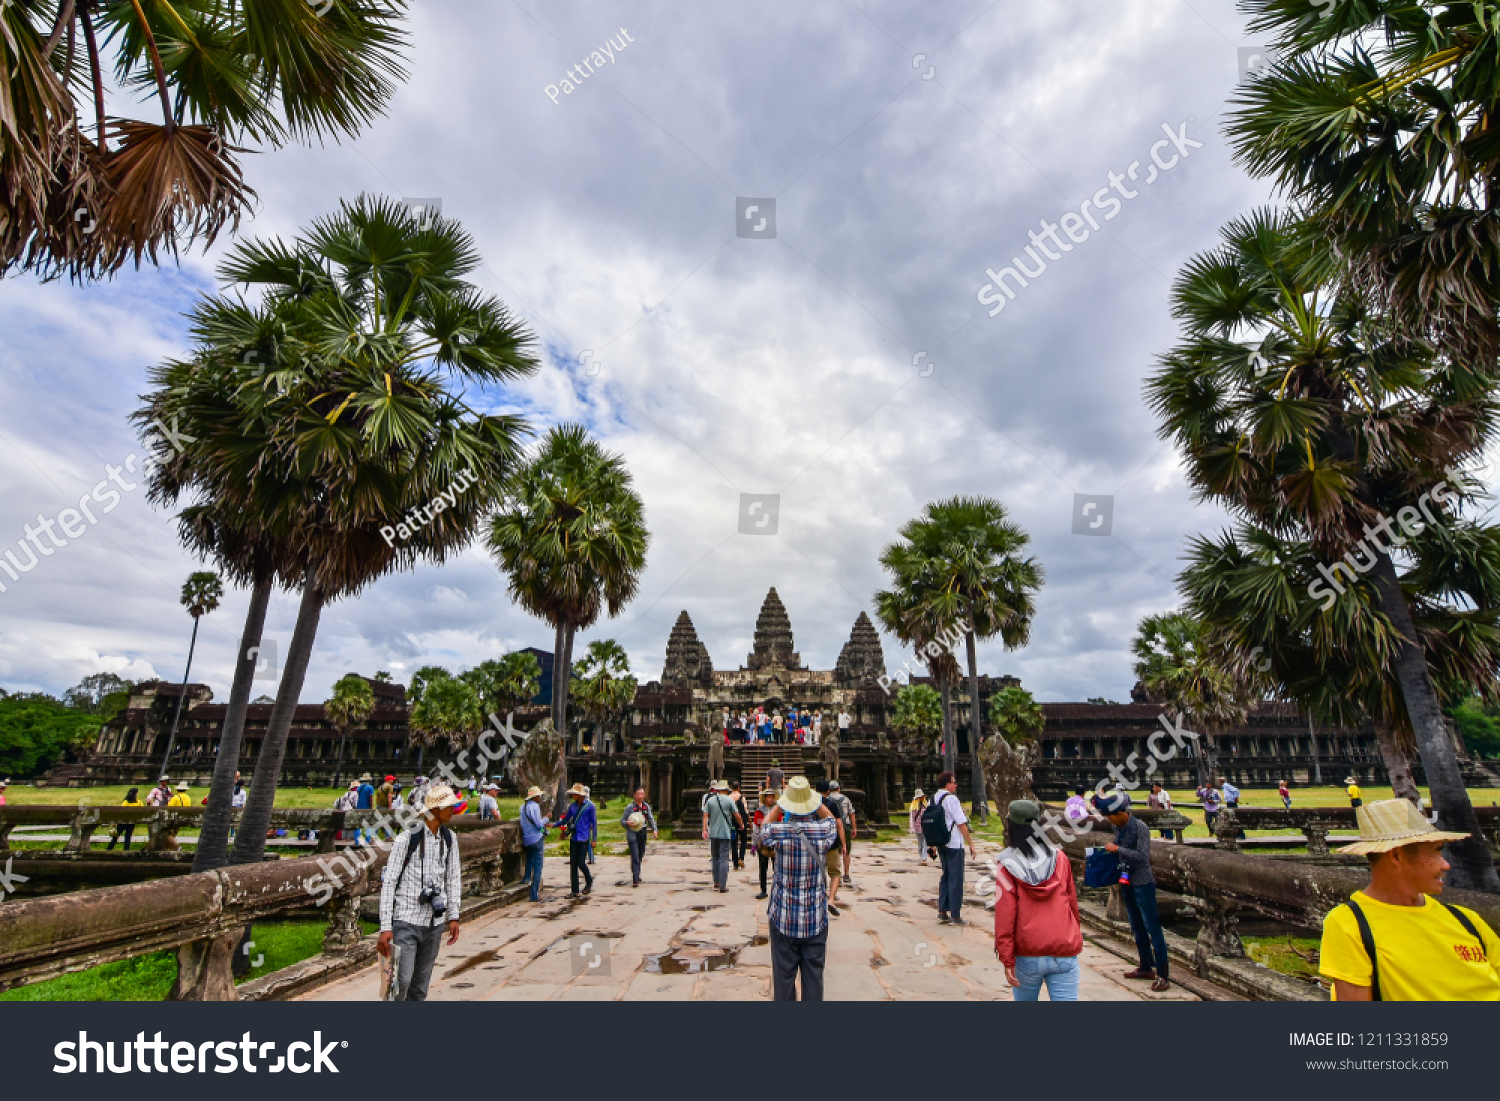 siem reap cambodia october 202018 tourist stock photo (edit now